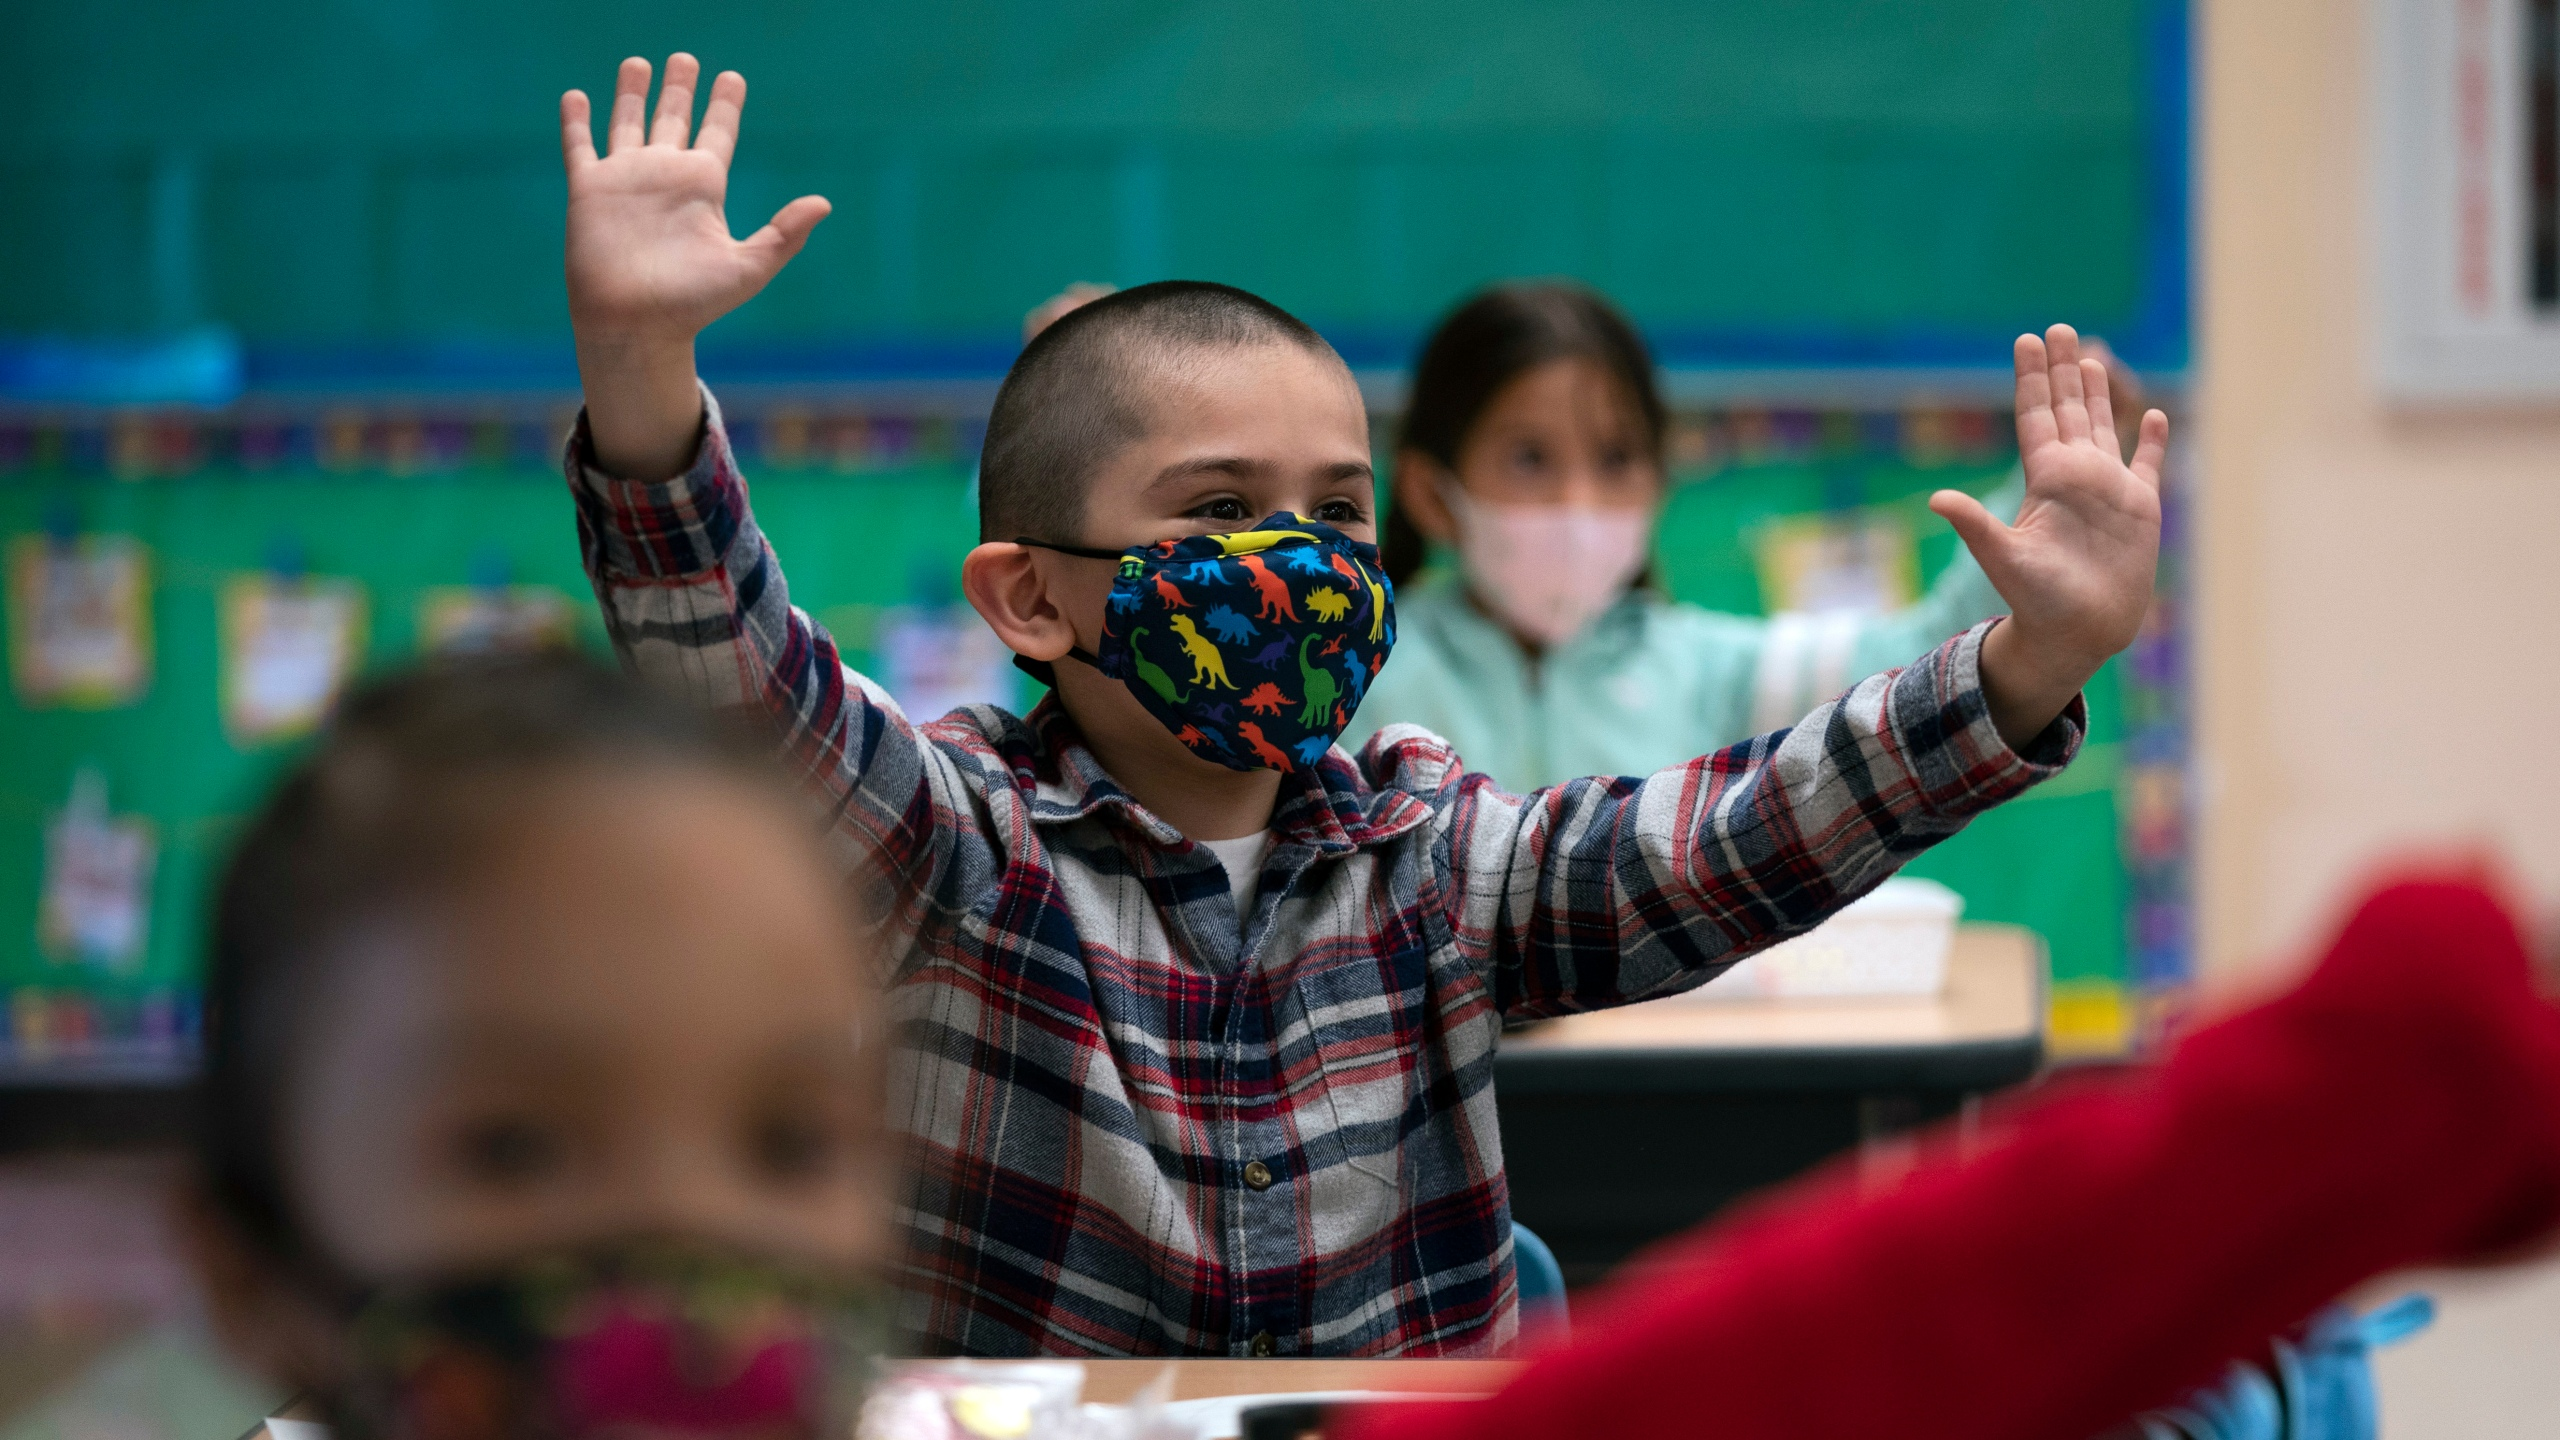 In this April 13, 2021, file photo, kindergarten students participate in a classroom activity on the first day of in-person learning at Maurice Sendak Elementary School in Los Angeles. (AP Photo/Jae C. Hong, File)